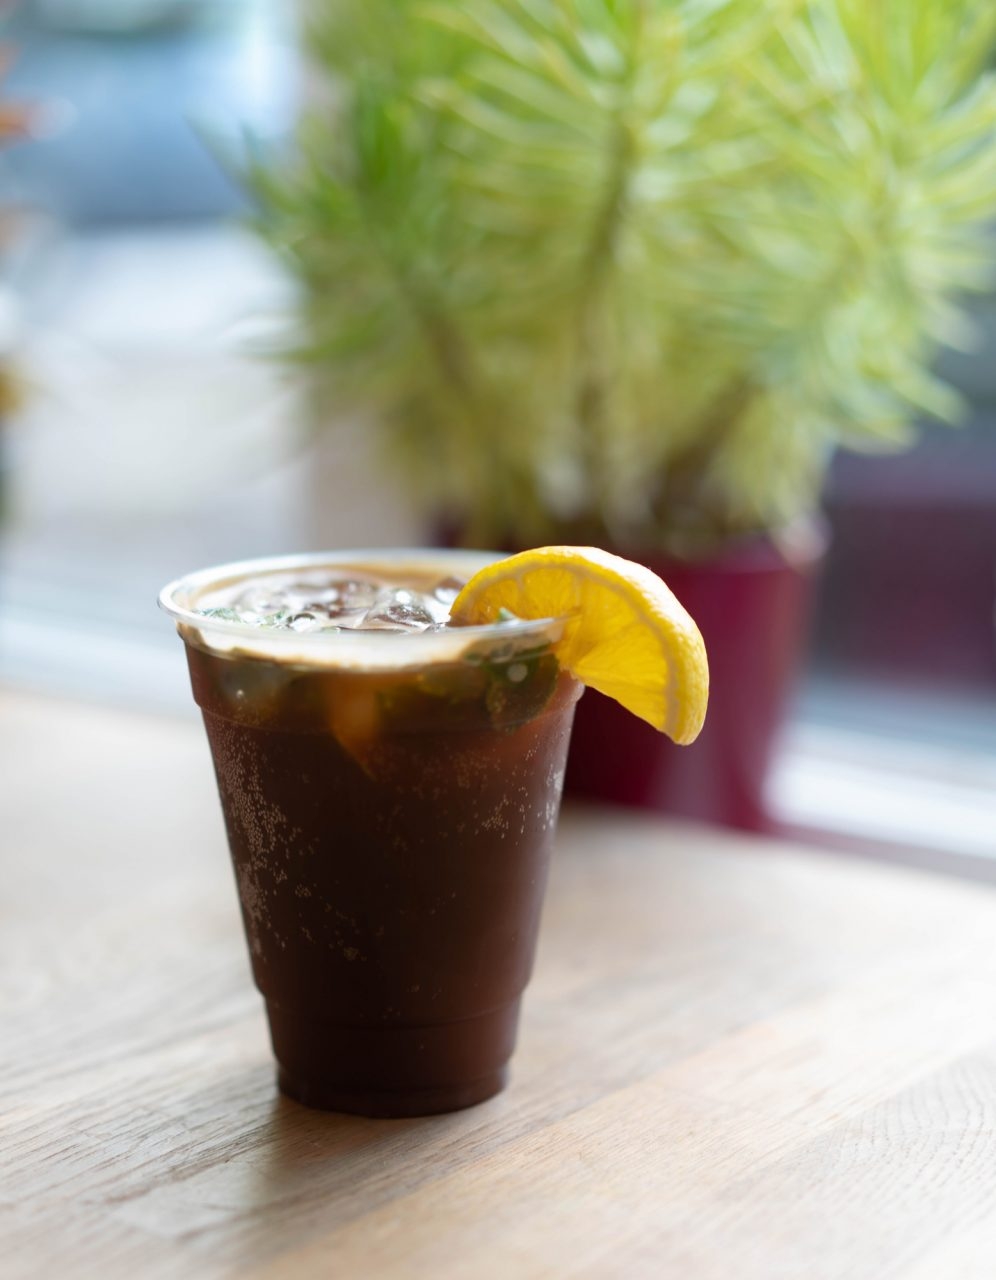 Hatchet Coffee's specialty drink, Camp Crush Coffee Soda, perfect for hot summer afternoons. This iced beverage is a lovely blend of espresso, blackberry soda, lemon and local purple basil.